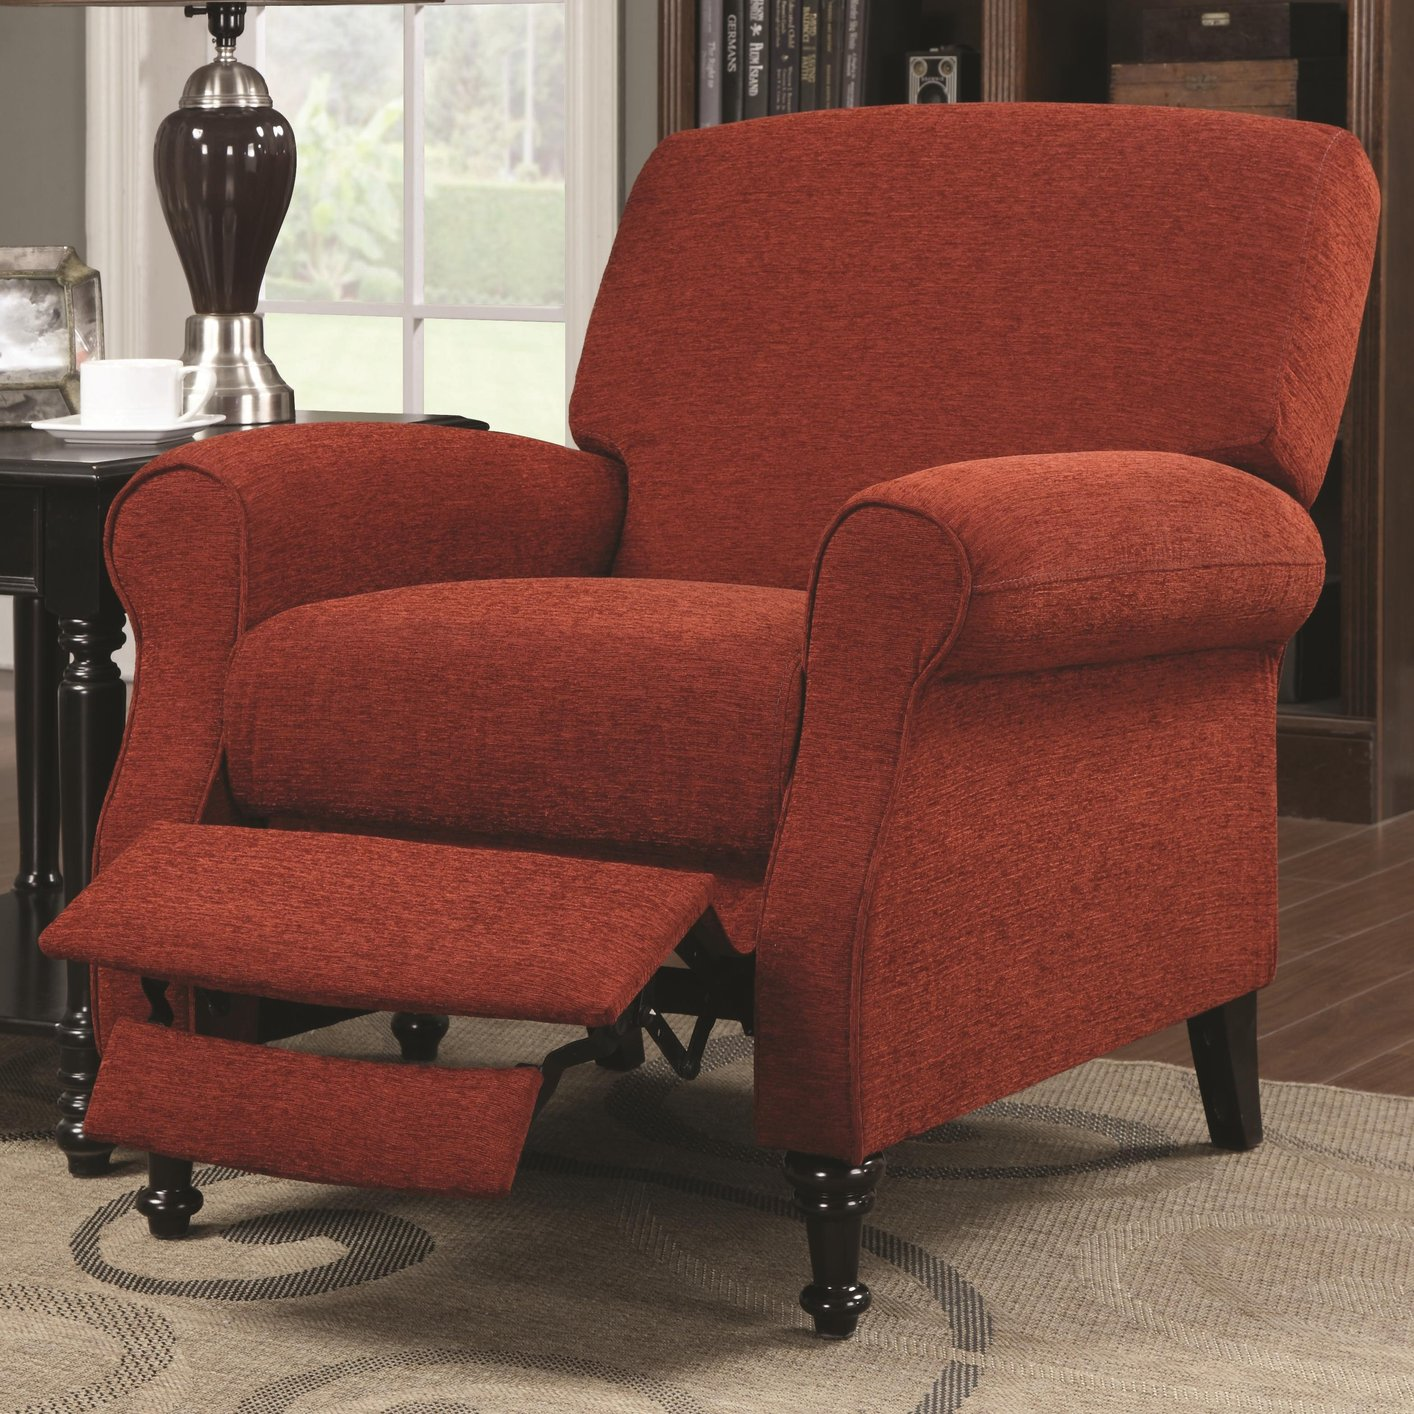 Red Fabric Reclining Chair : cloth recliner chairs - islam-shia.org